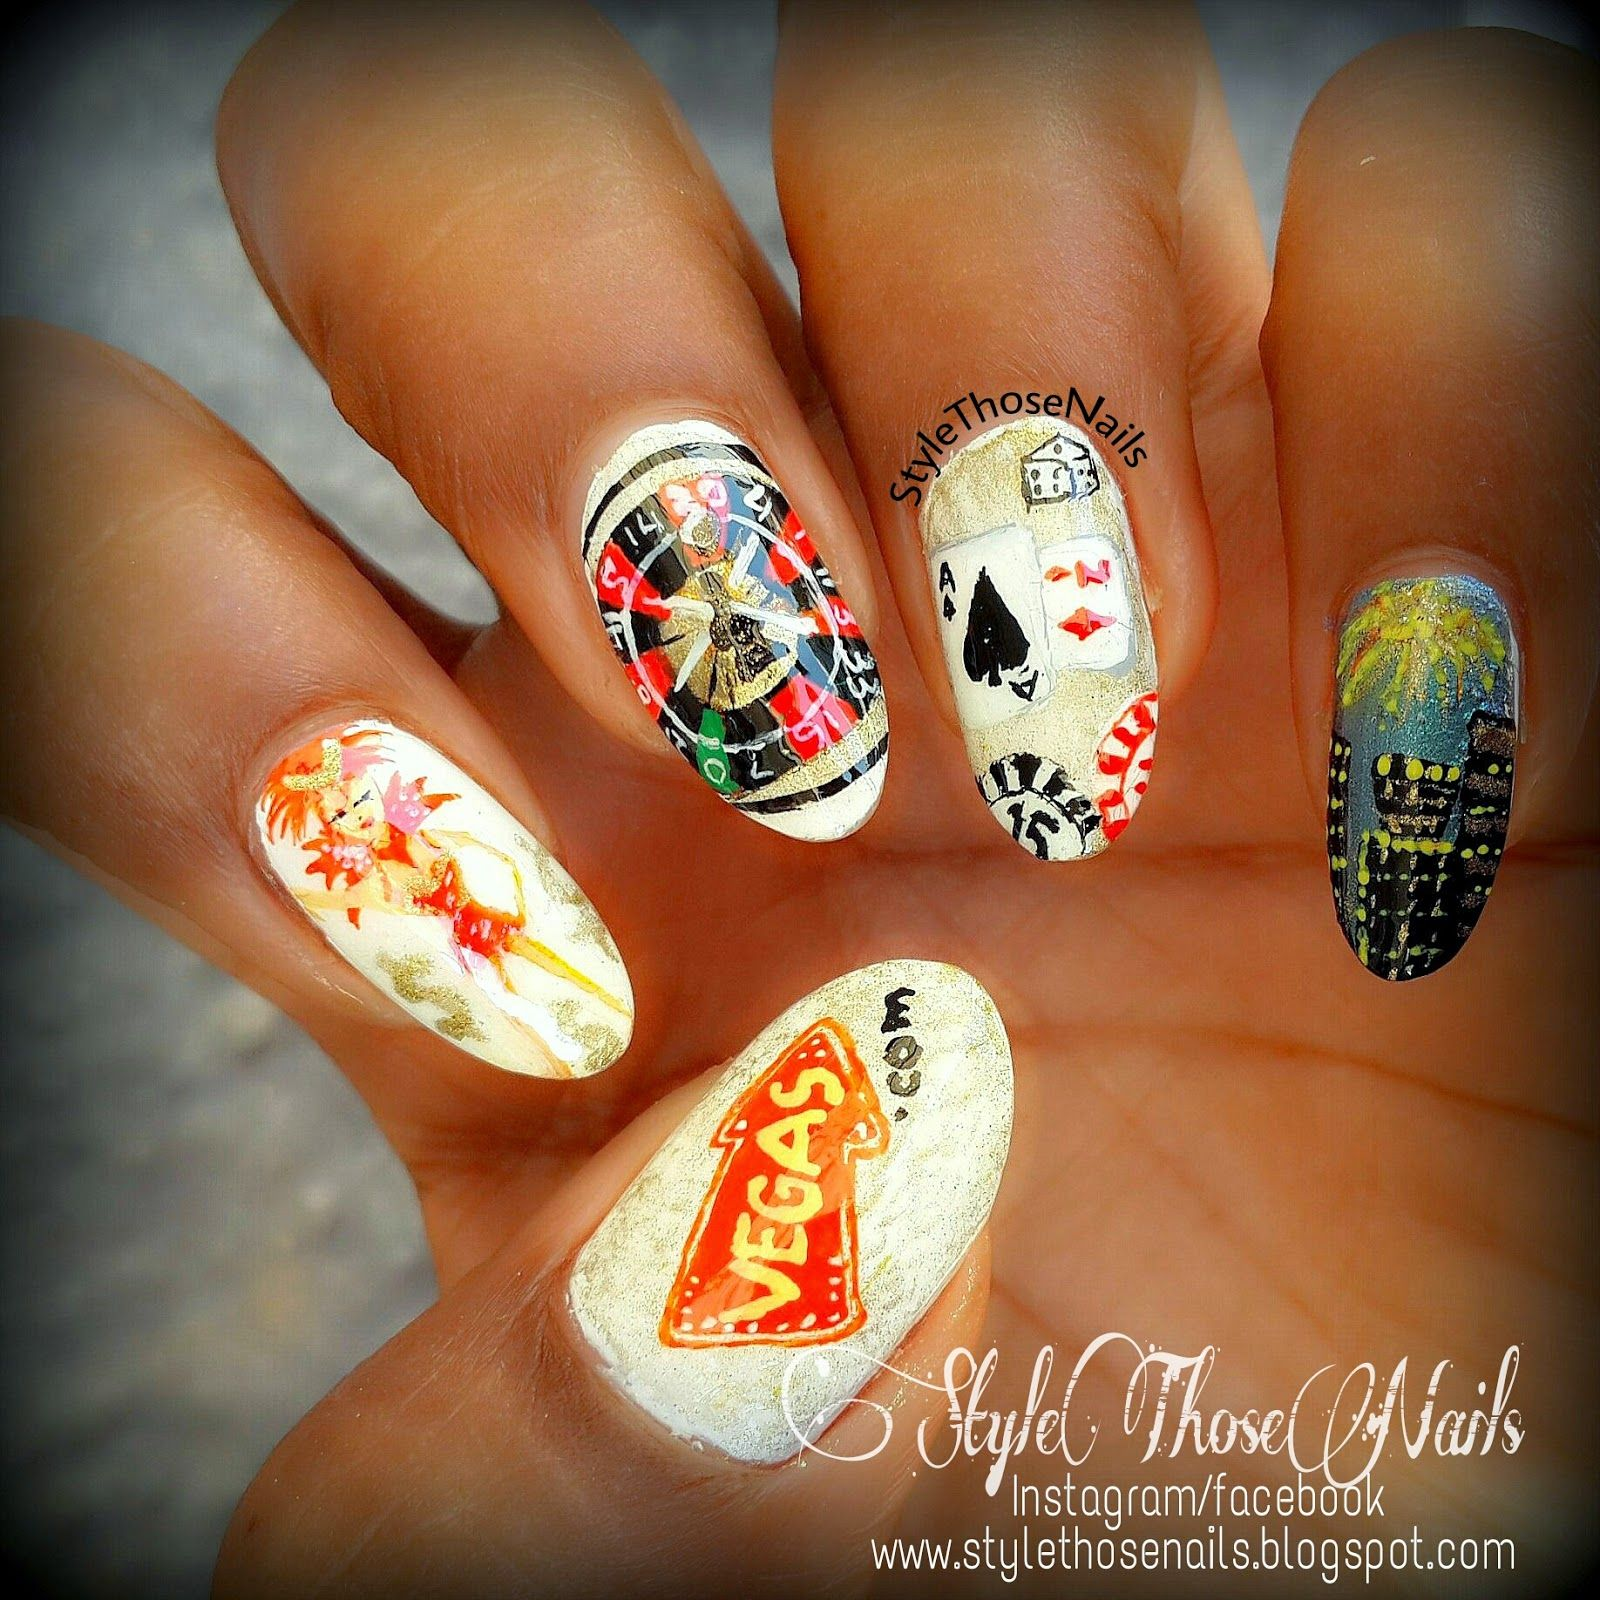 Style those nails night out in vegas a las vegas themed nail art hello lovelies today i will share a special nail art prinsesfo Gallery